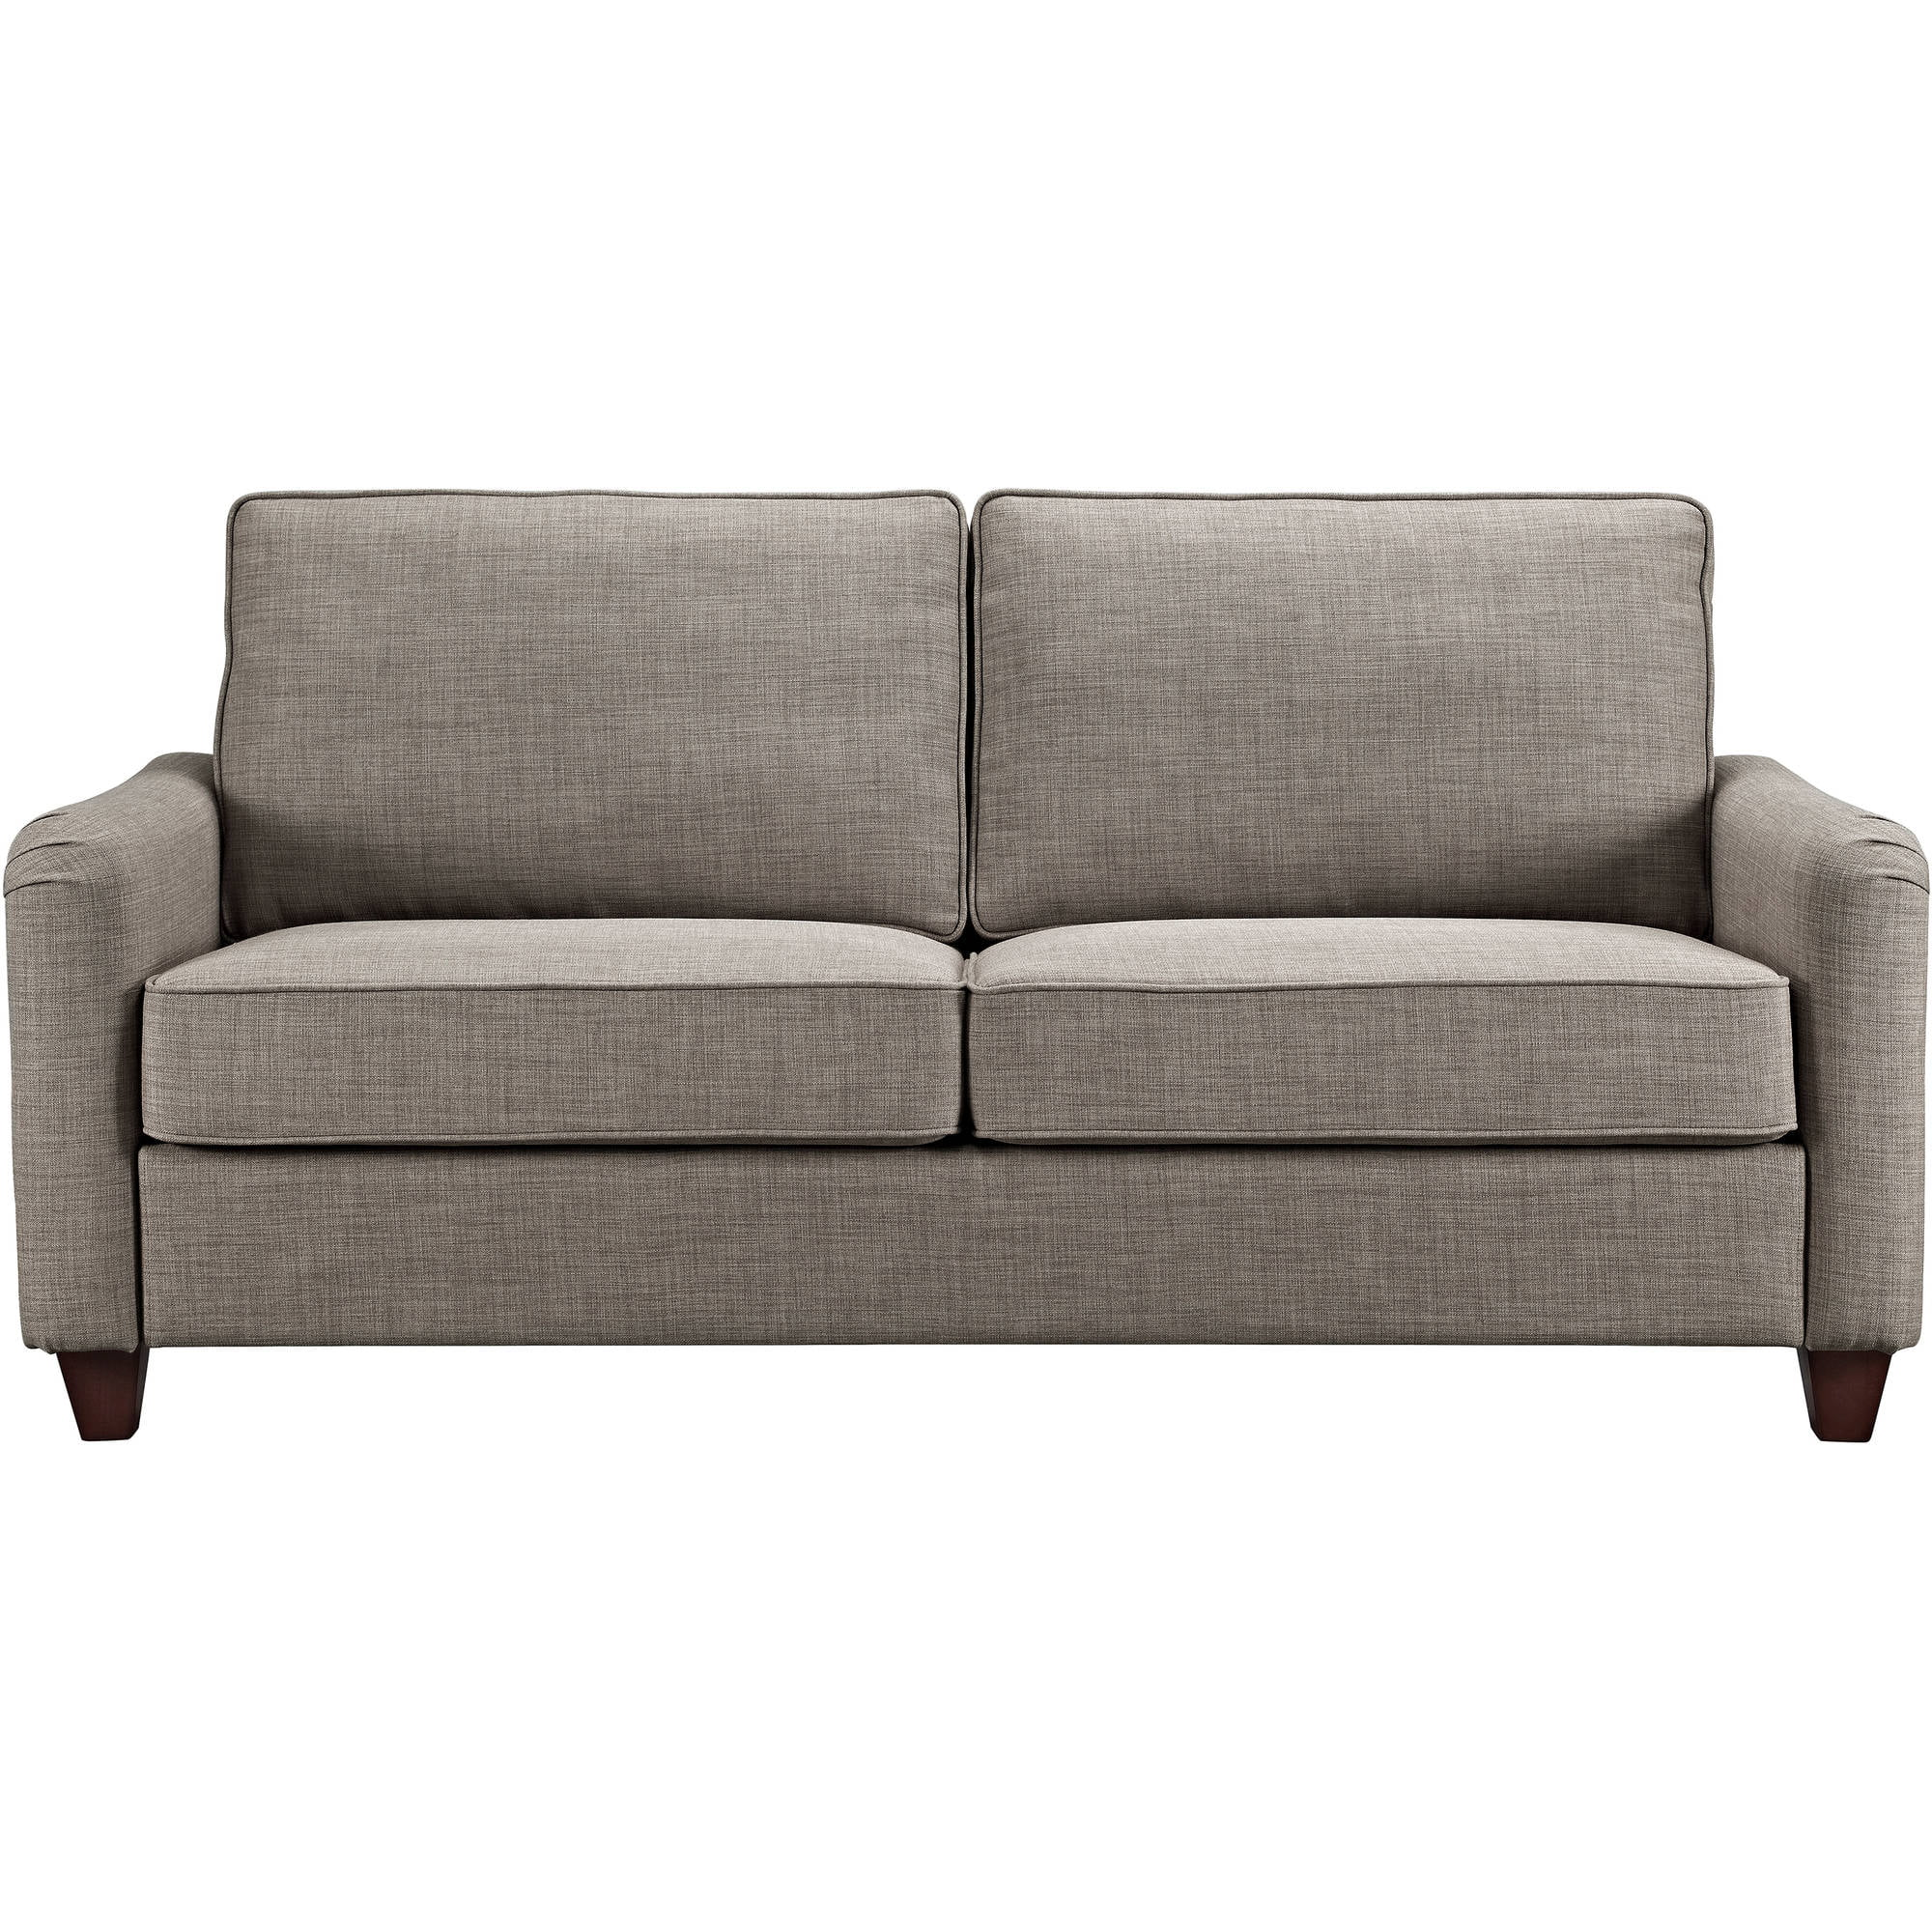 Sofa Furniture better homes and gardens grayson sofa with nailheads, grey